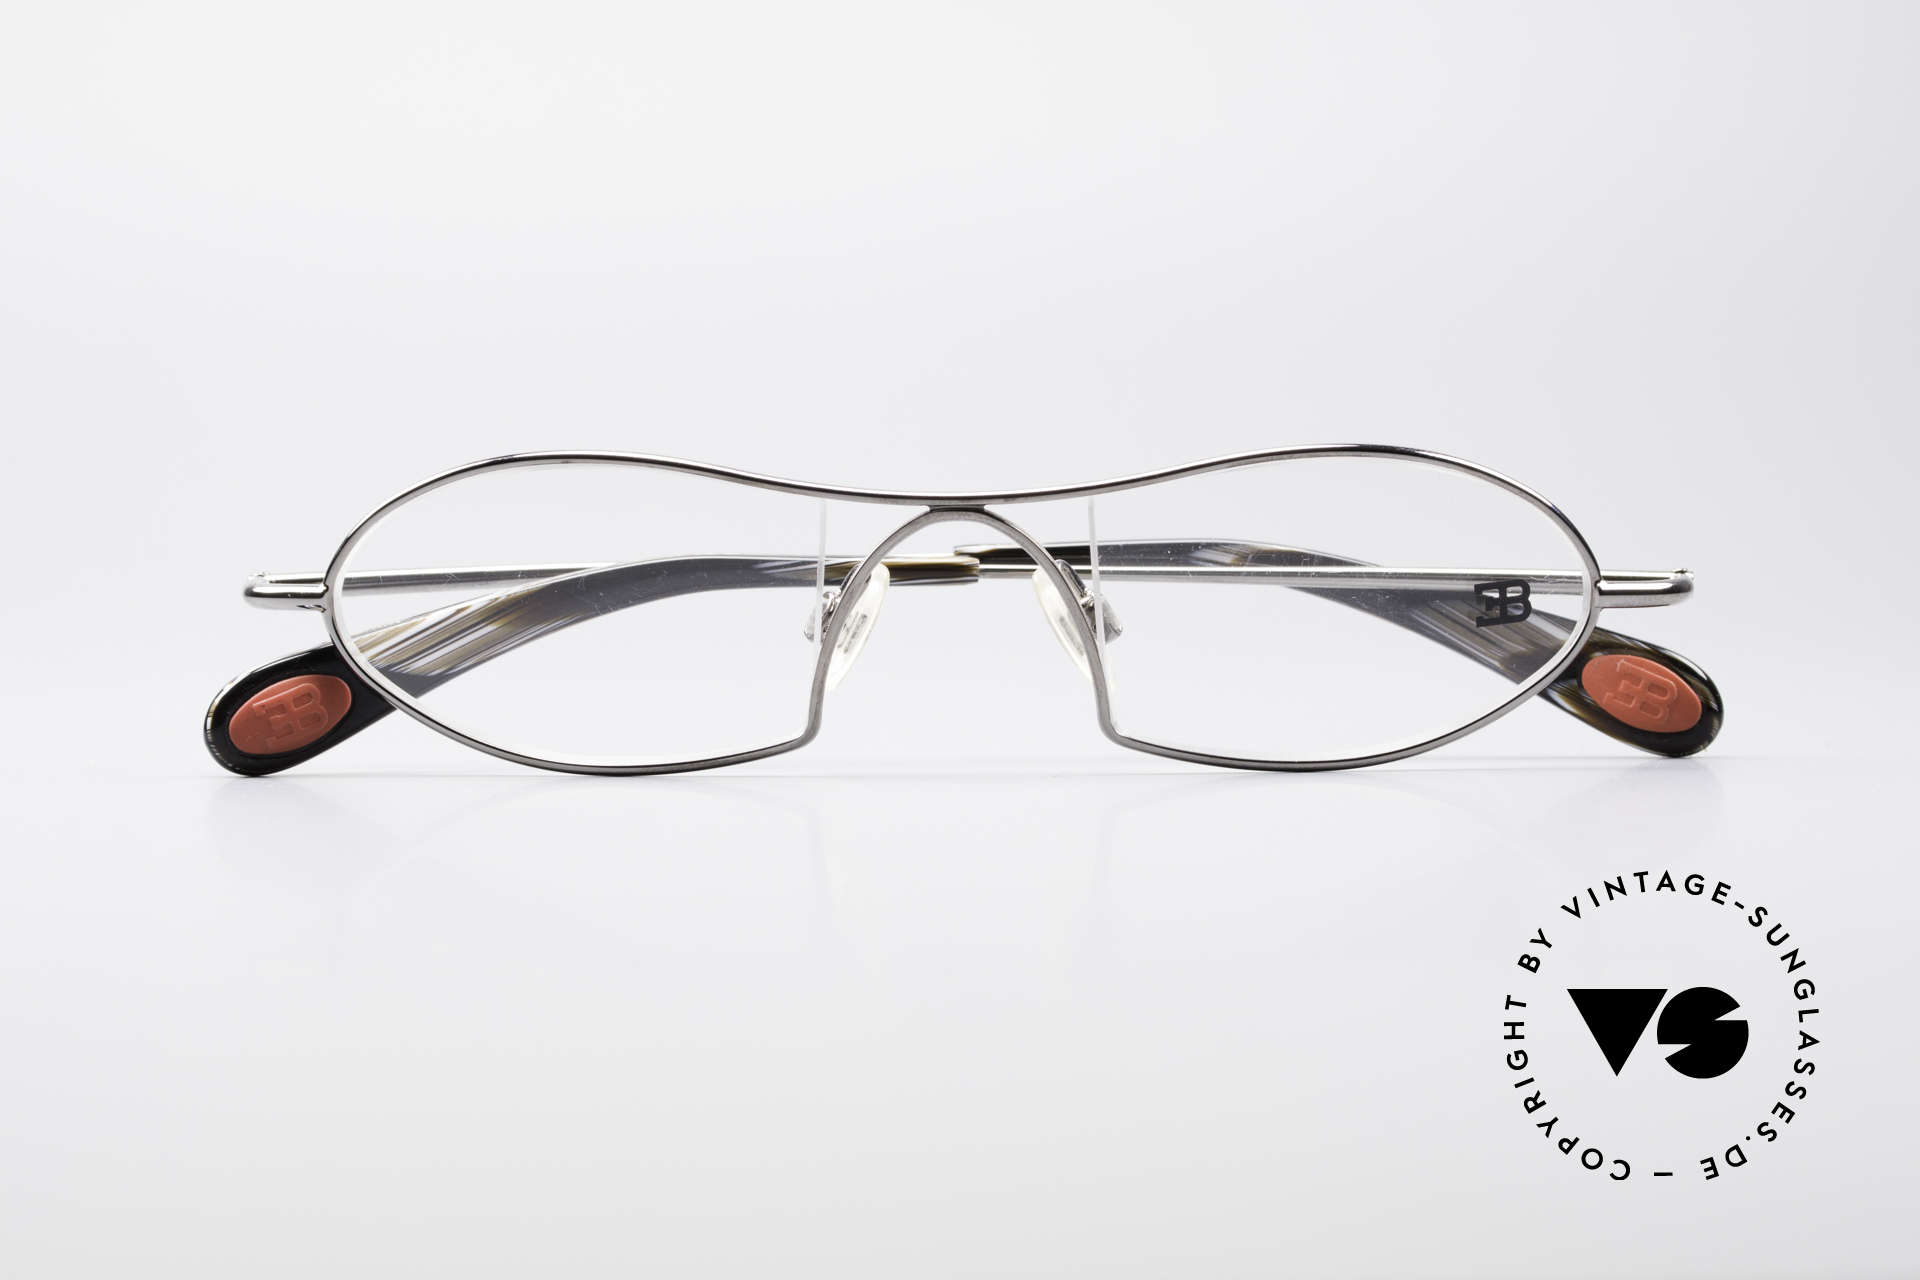 Bugatti 351 Odotype Rare Men's Designer Frame, very special lens construction; TOP comfort, Made for Men